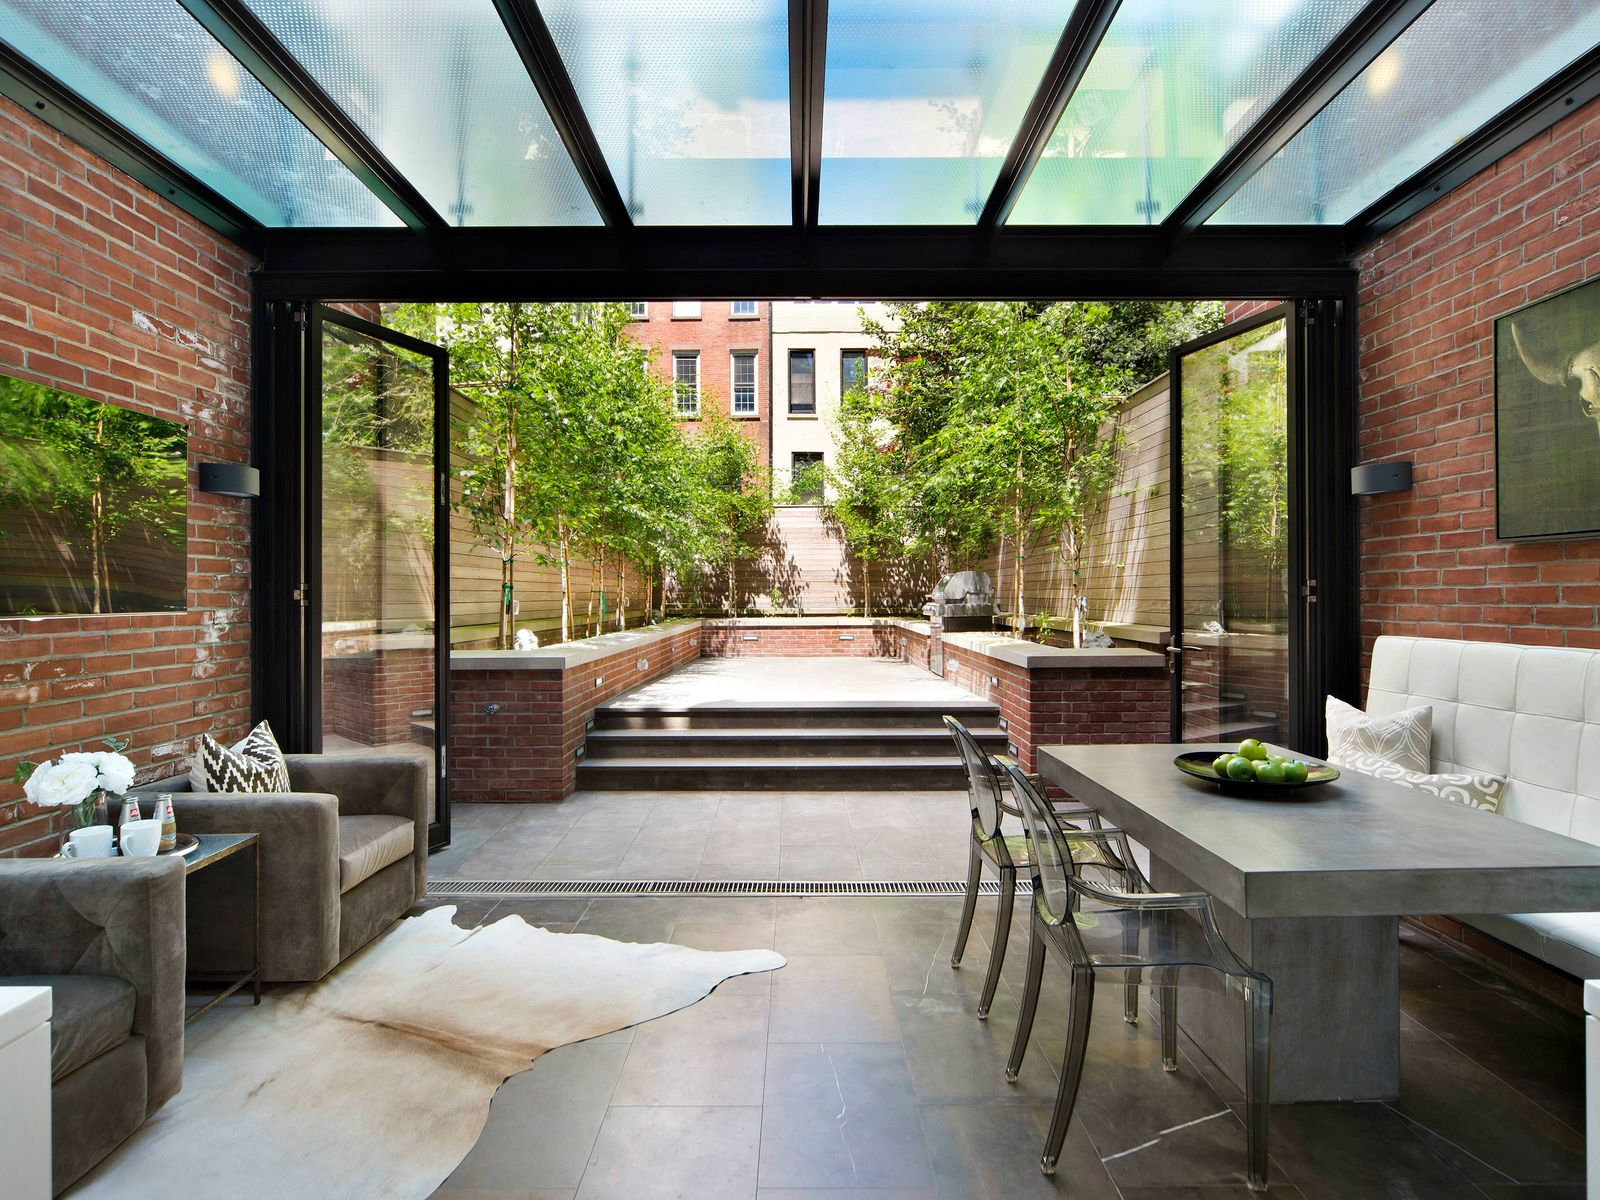 211 East 61st Street, New York NY Townhouse - New York City Real Estate